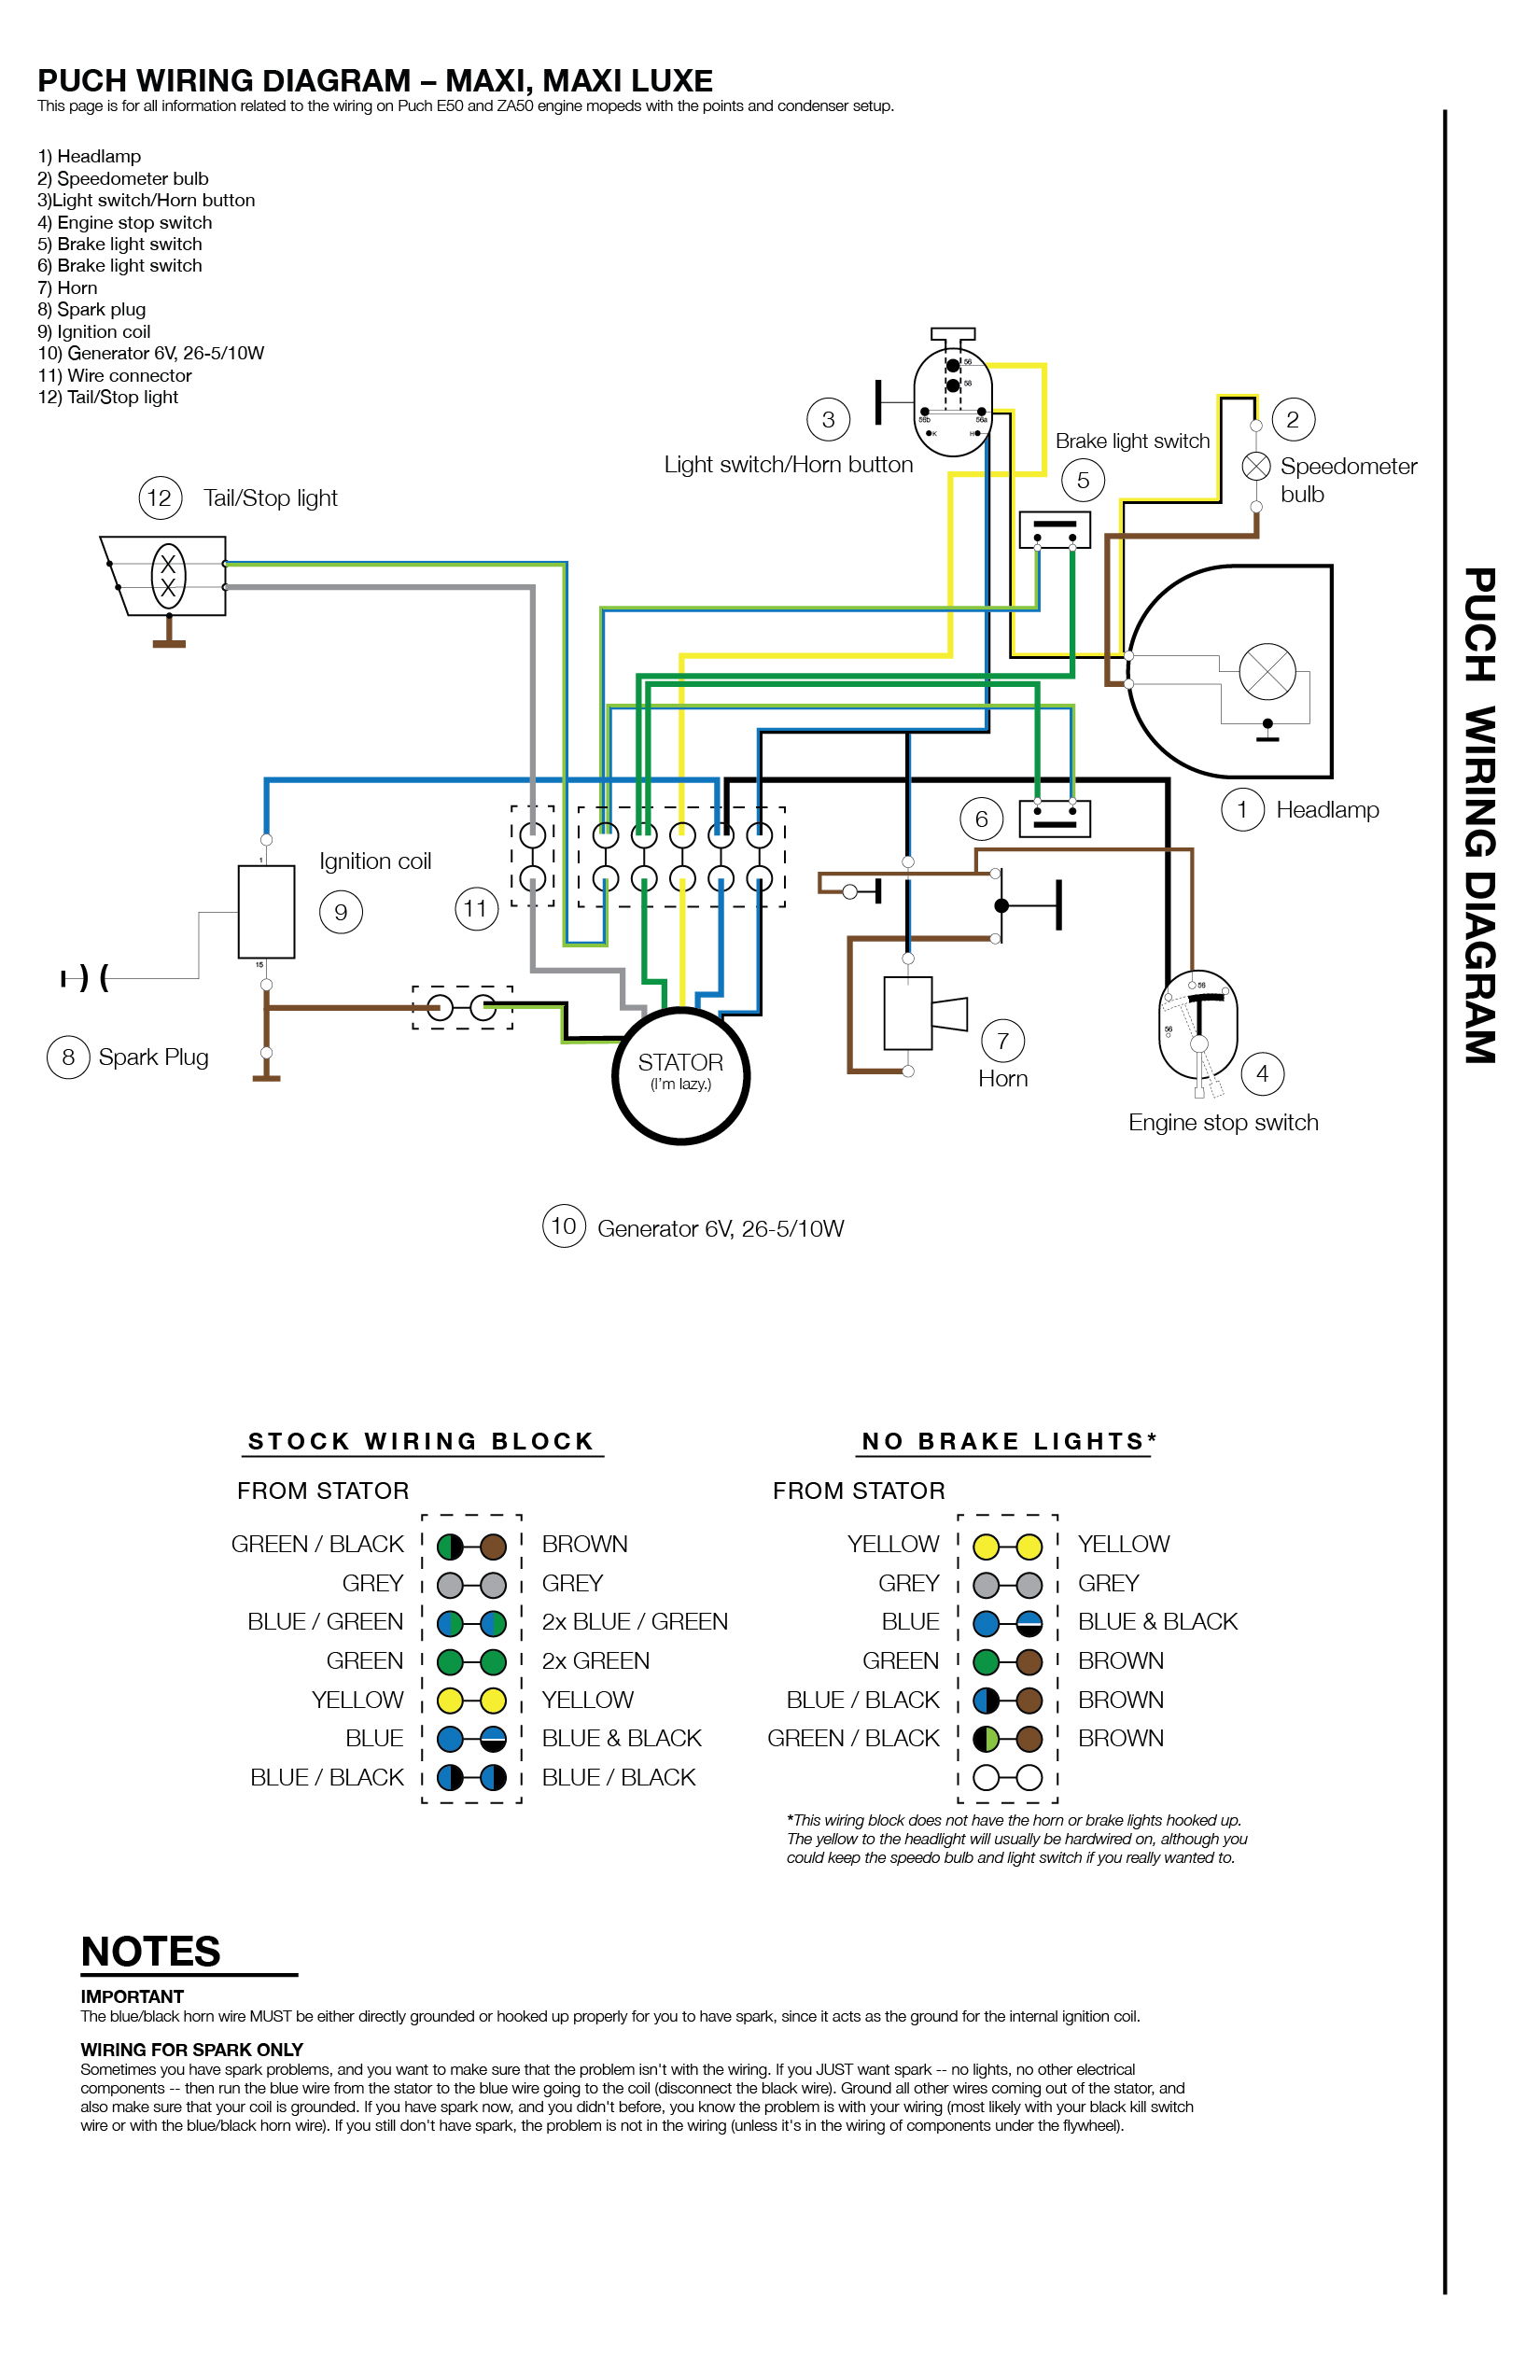 Puch_wiring 02 puch wiring moped wiki Basic Electrical Wiring Diagrams at mifinder.co